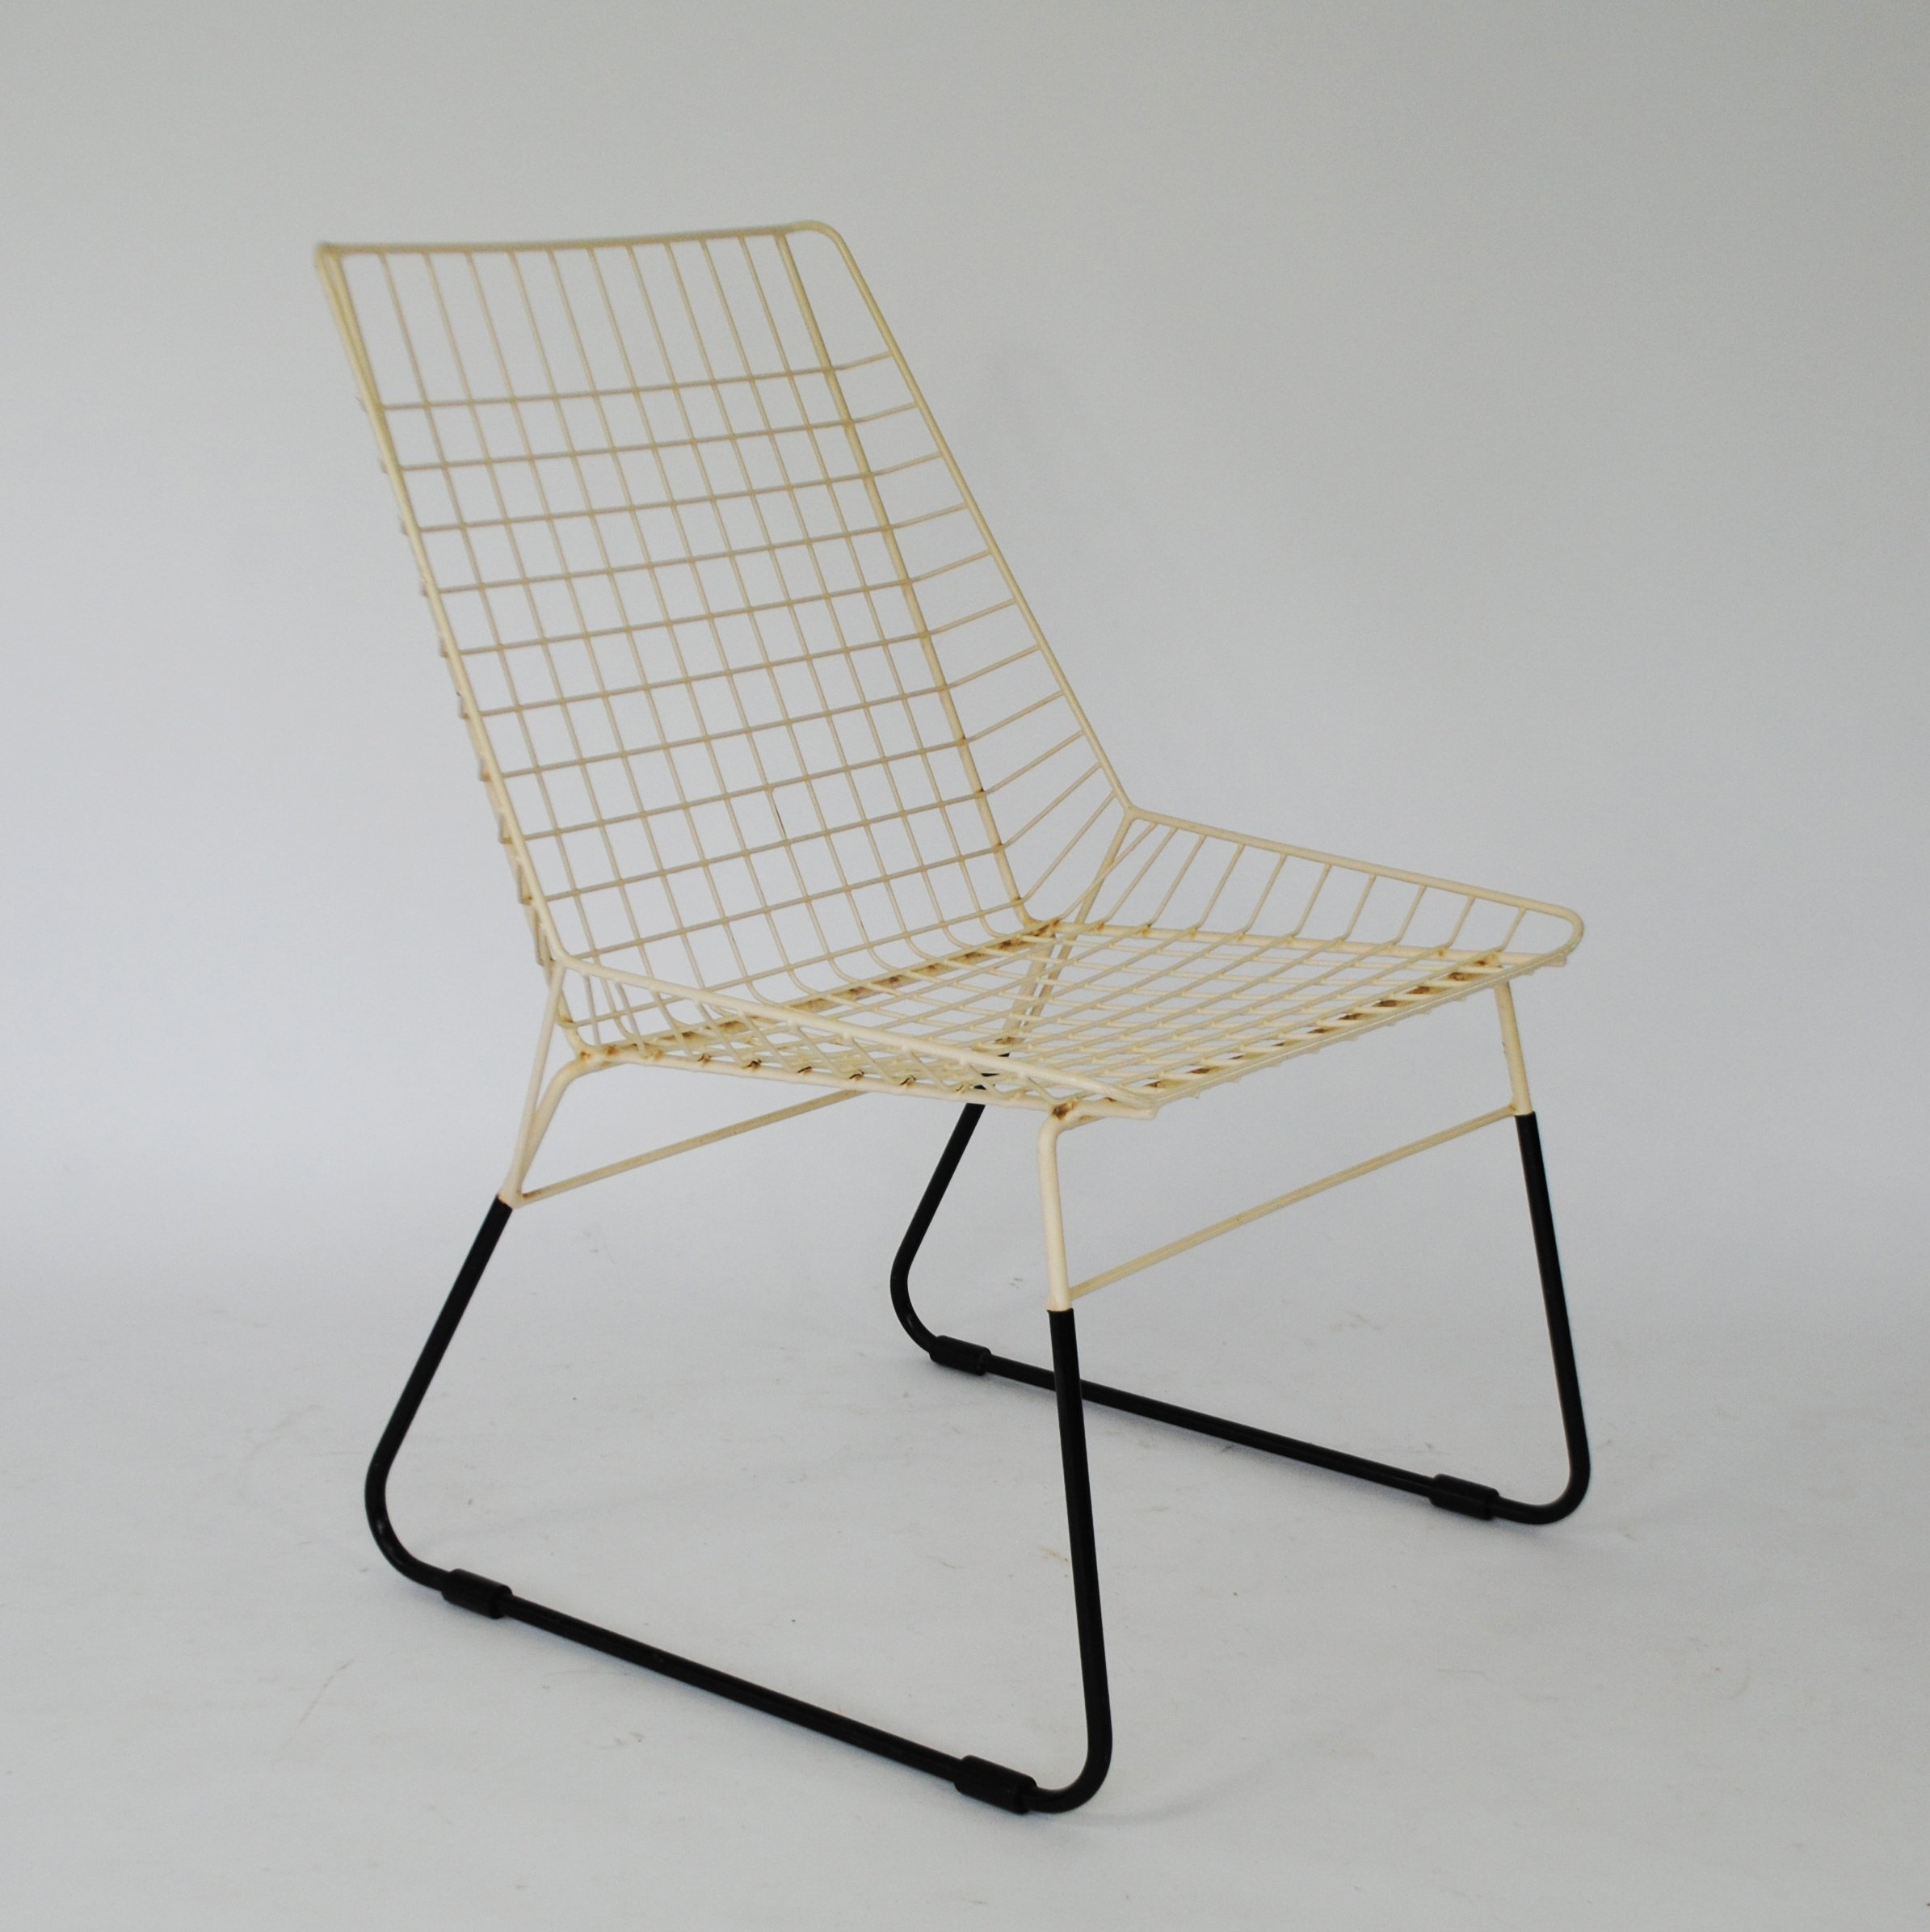 Flamingo Lounge Chair By Cees Braakman For Pastoe, 1960s